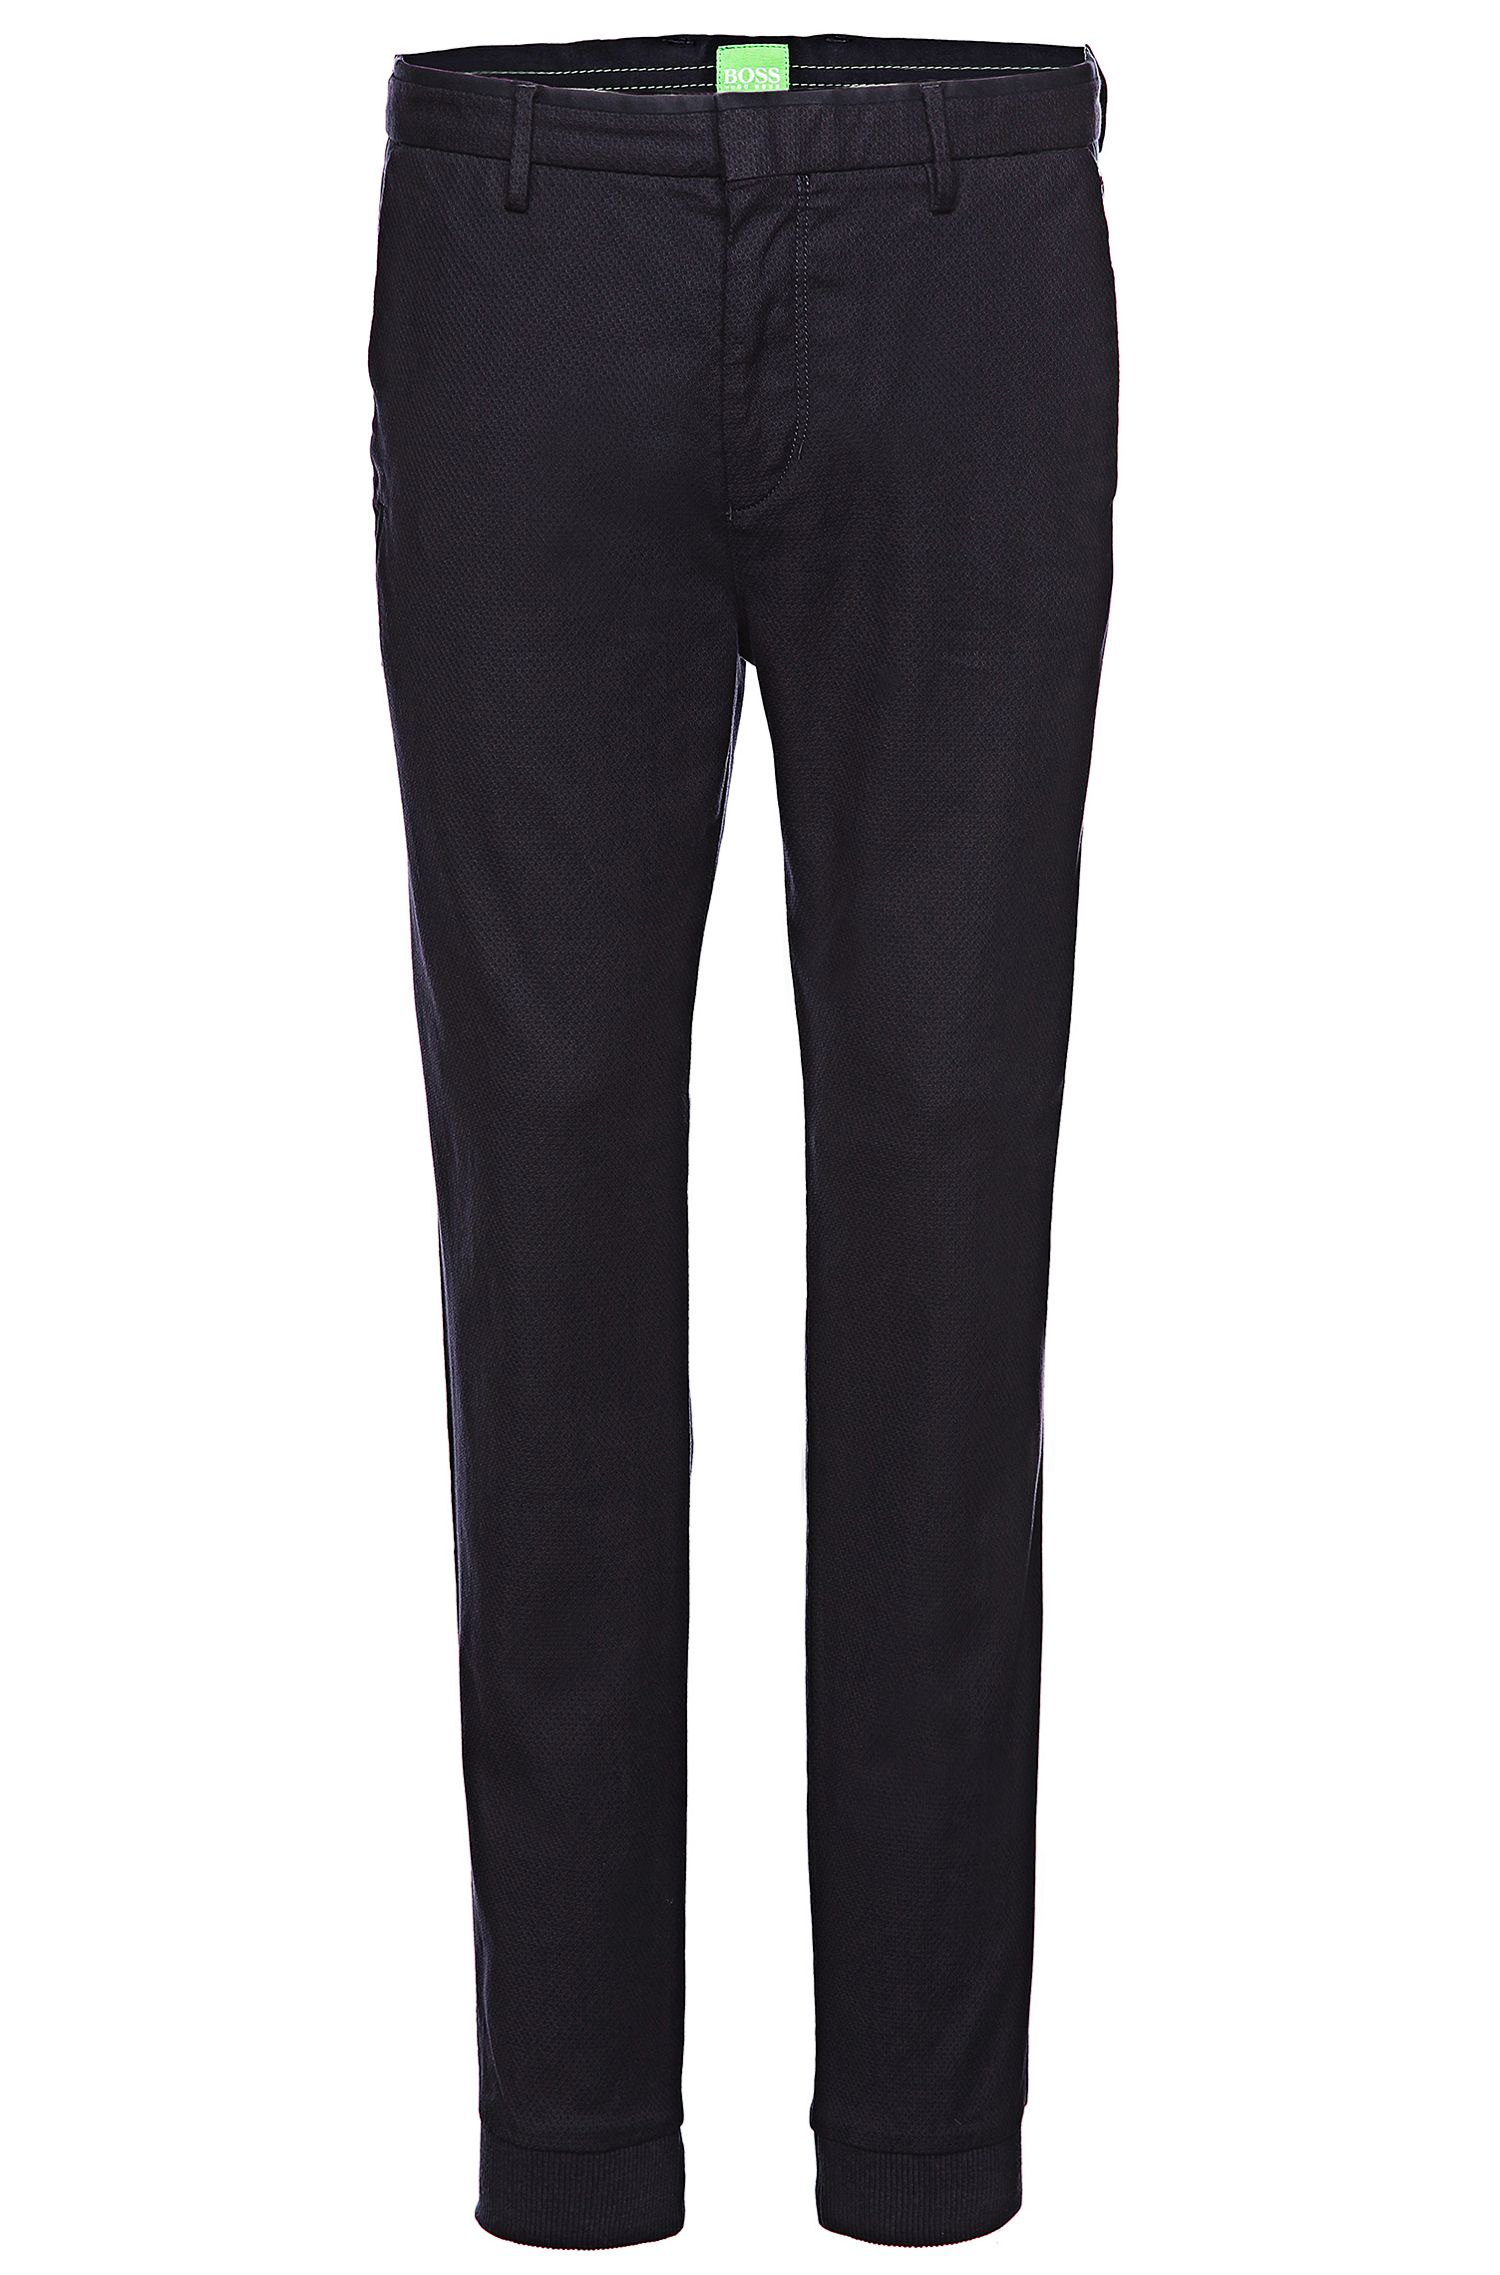 'Loomes-W' | Slim Fit, Stretch Cotton Textured Chinos